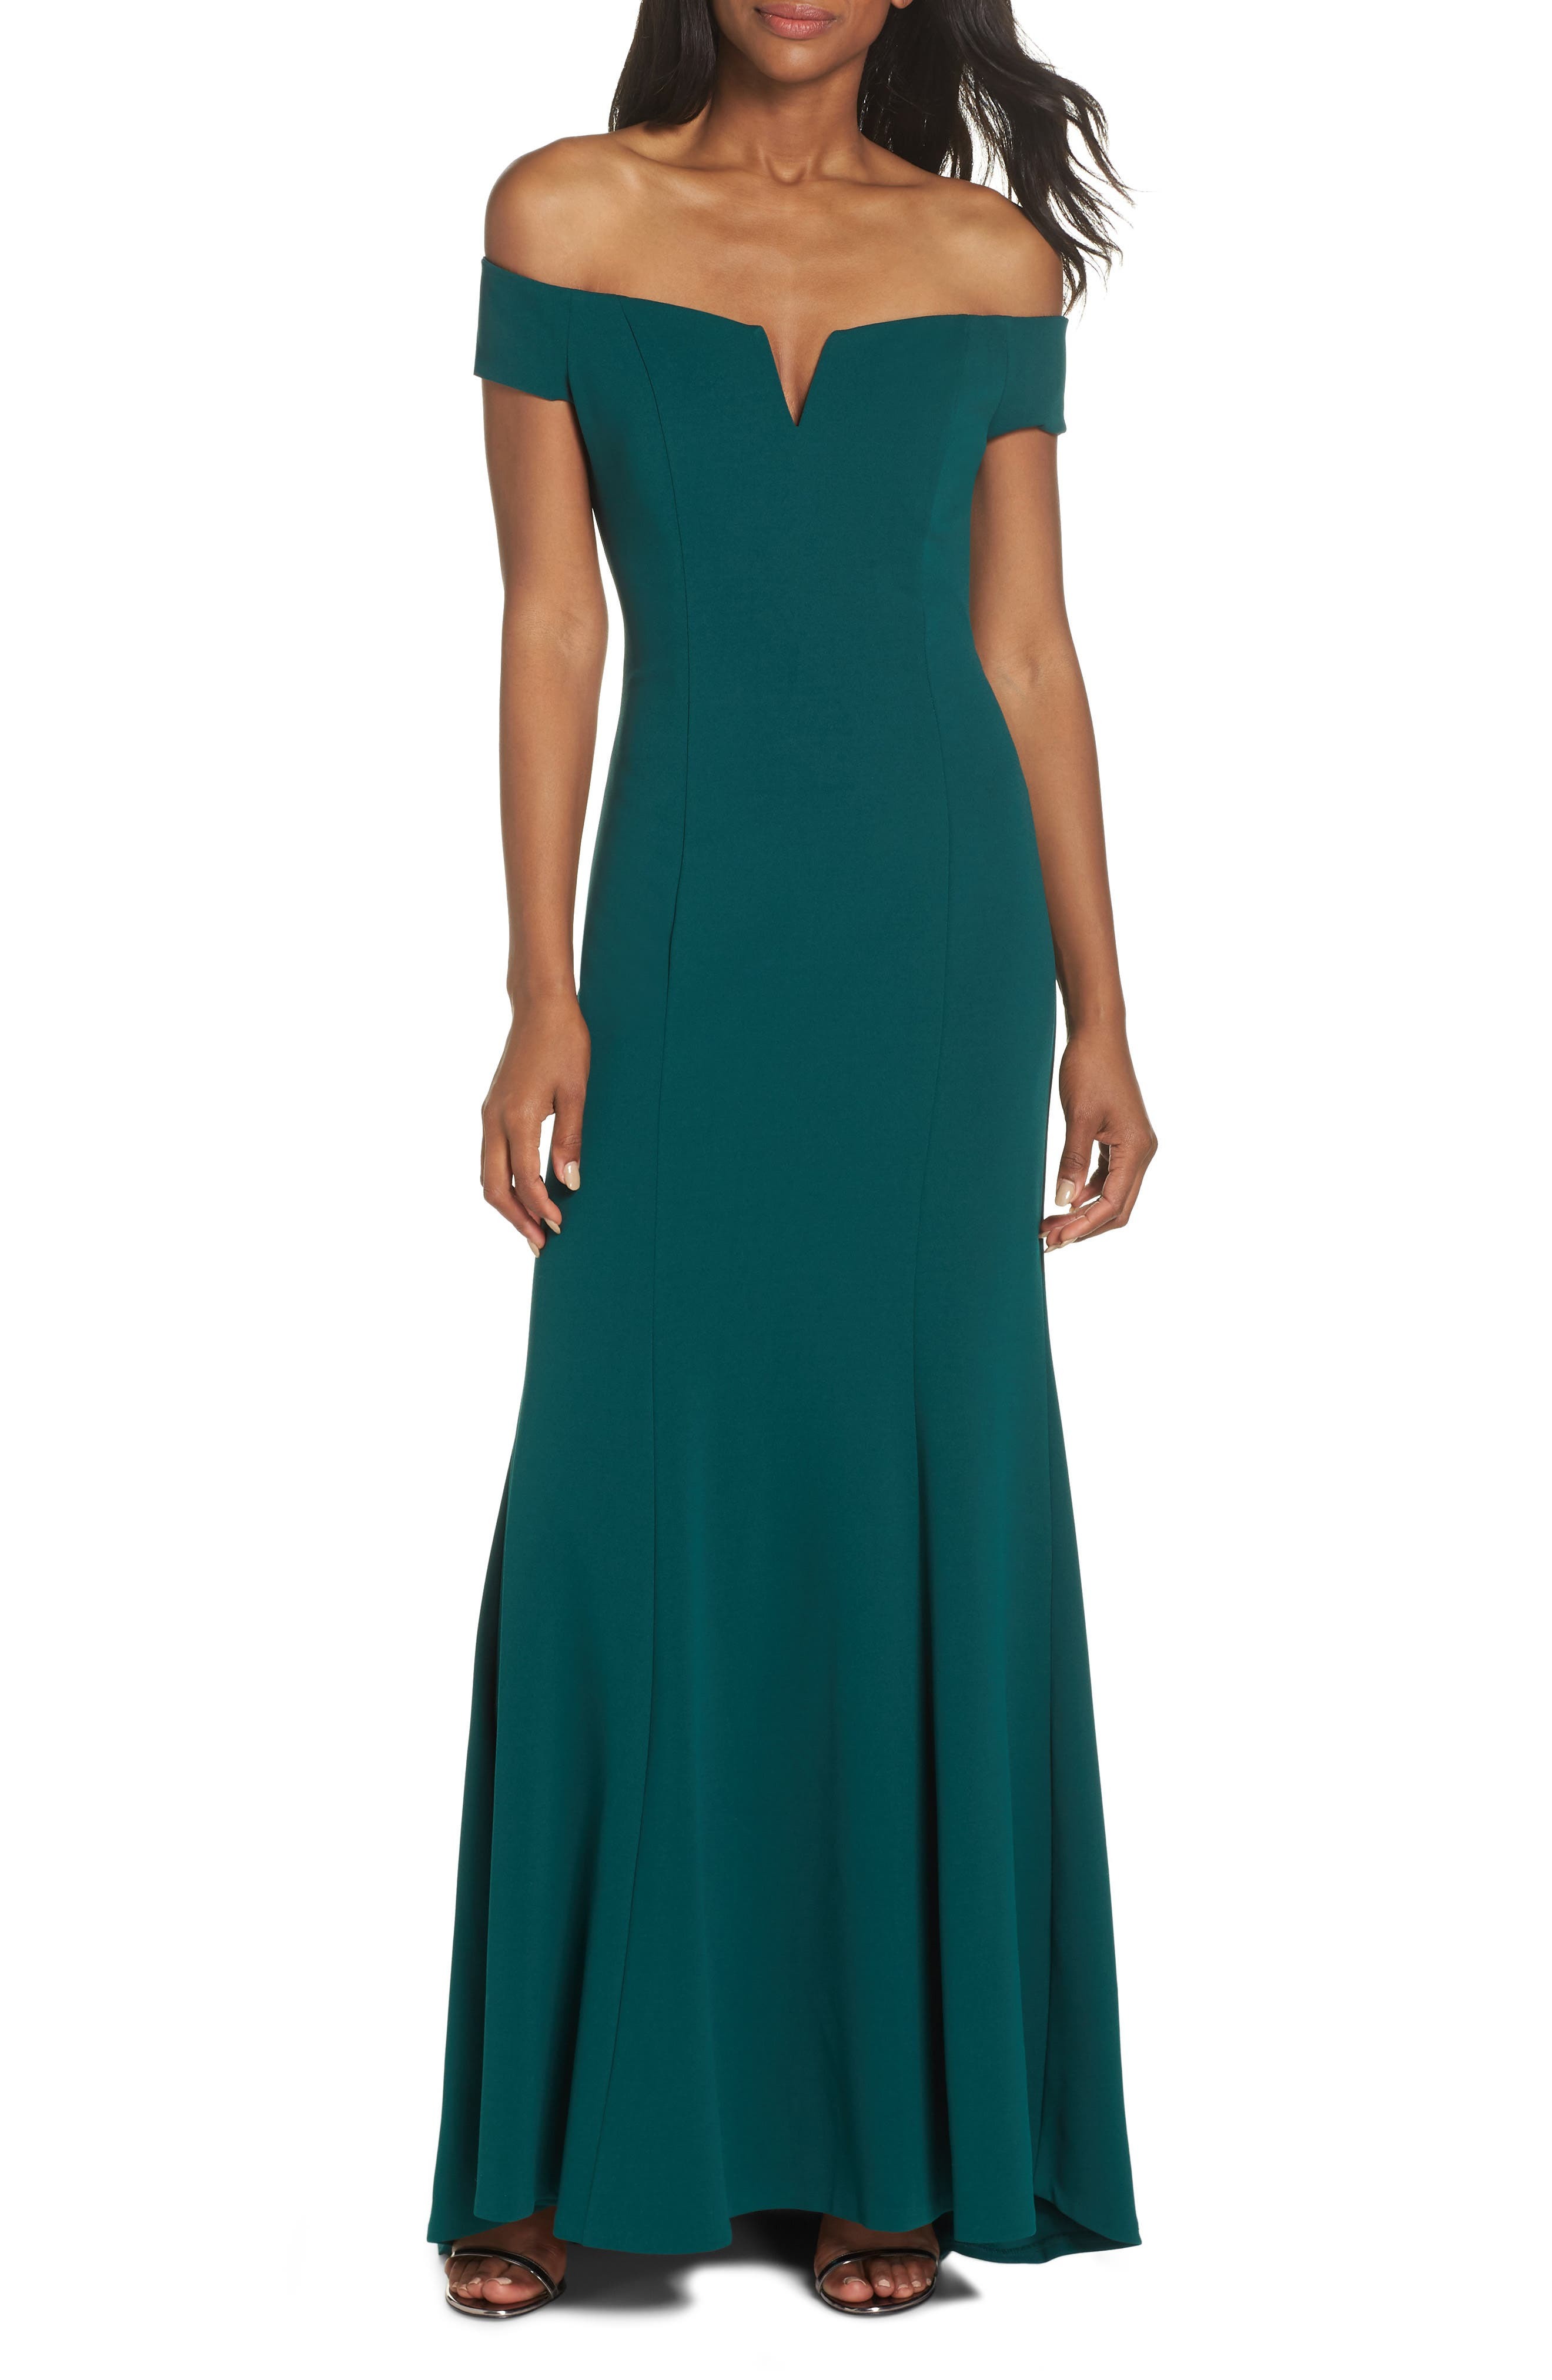 Notched Off the Shoulder Trumpet Gown,                             Main thumbnail 1, color,                             EMERALD